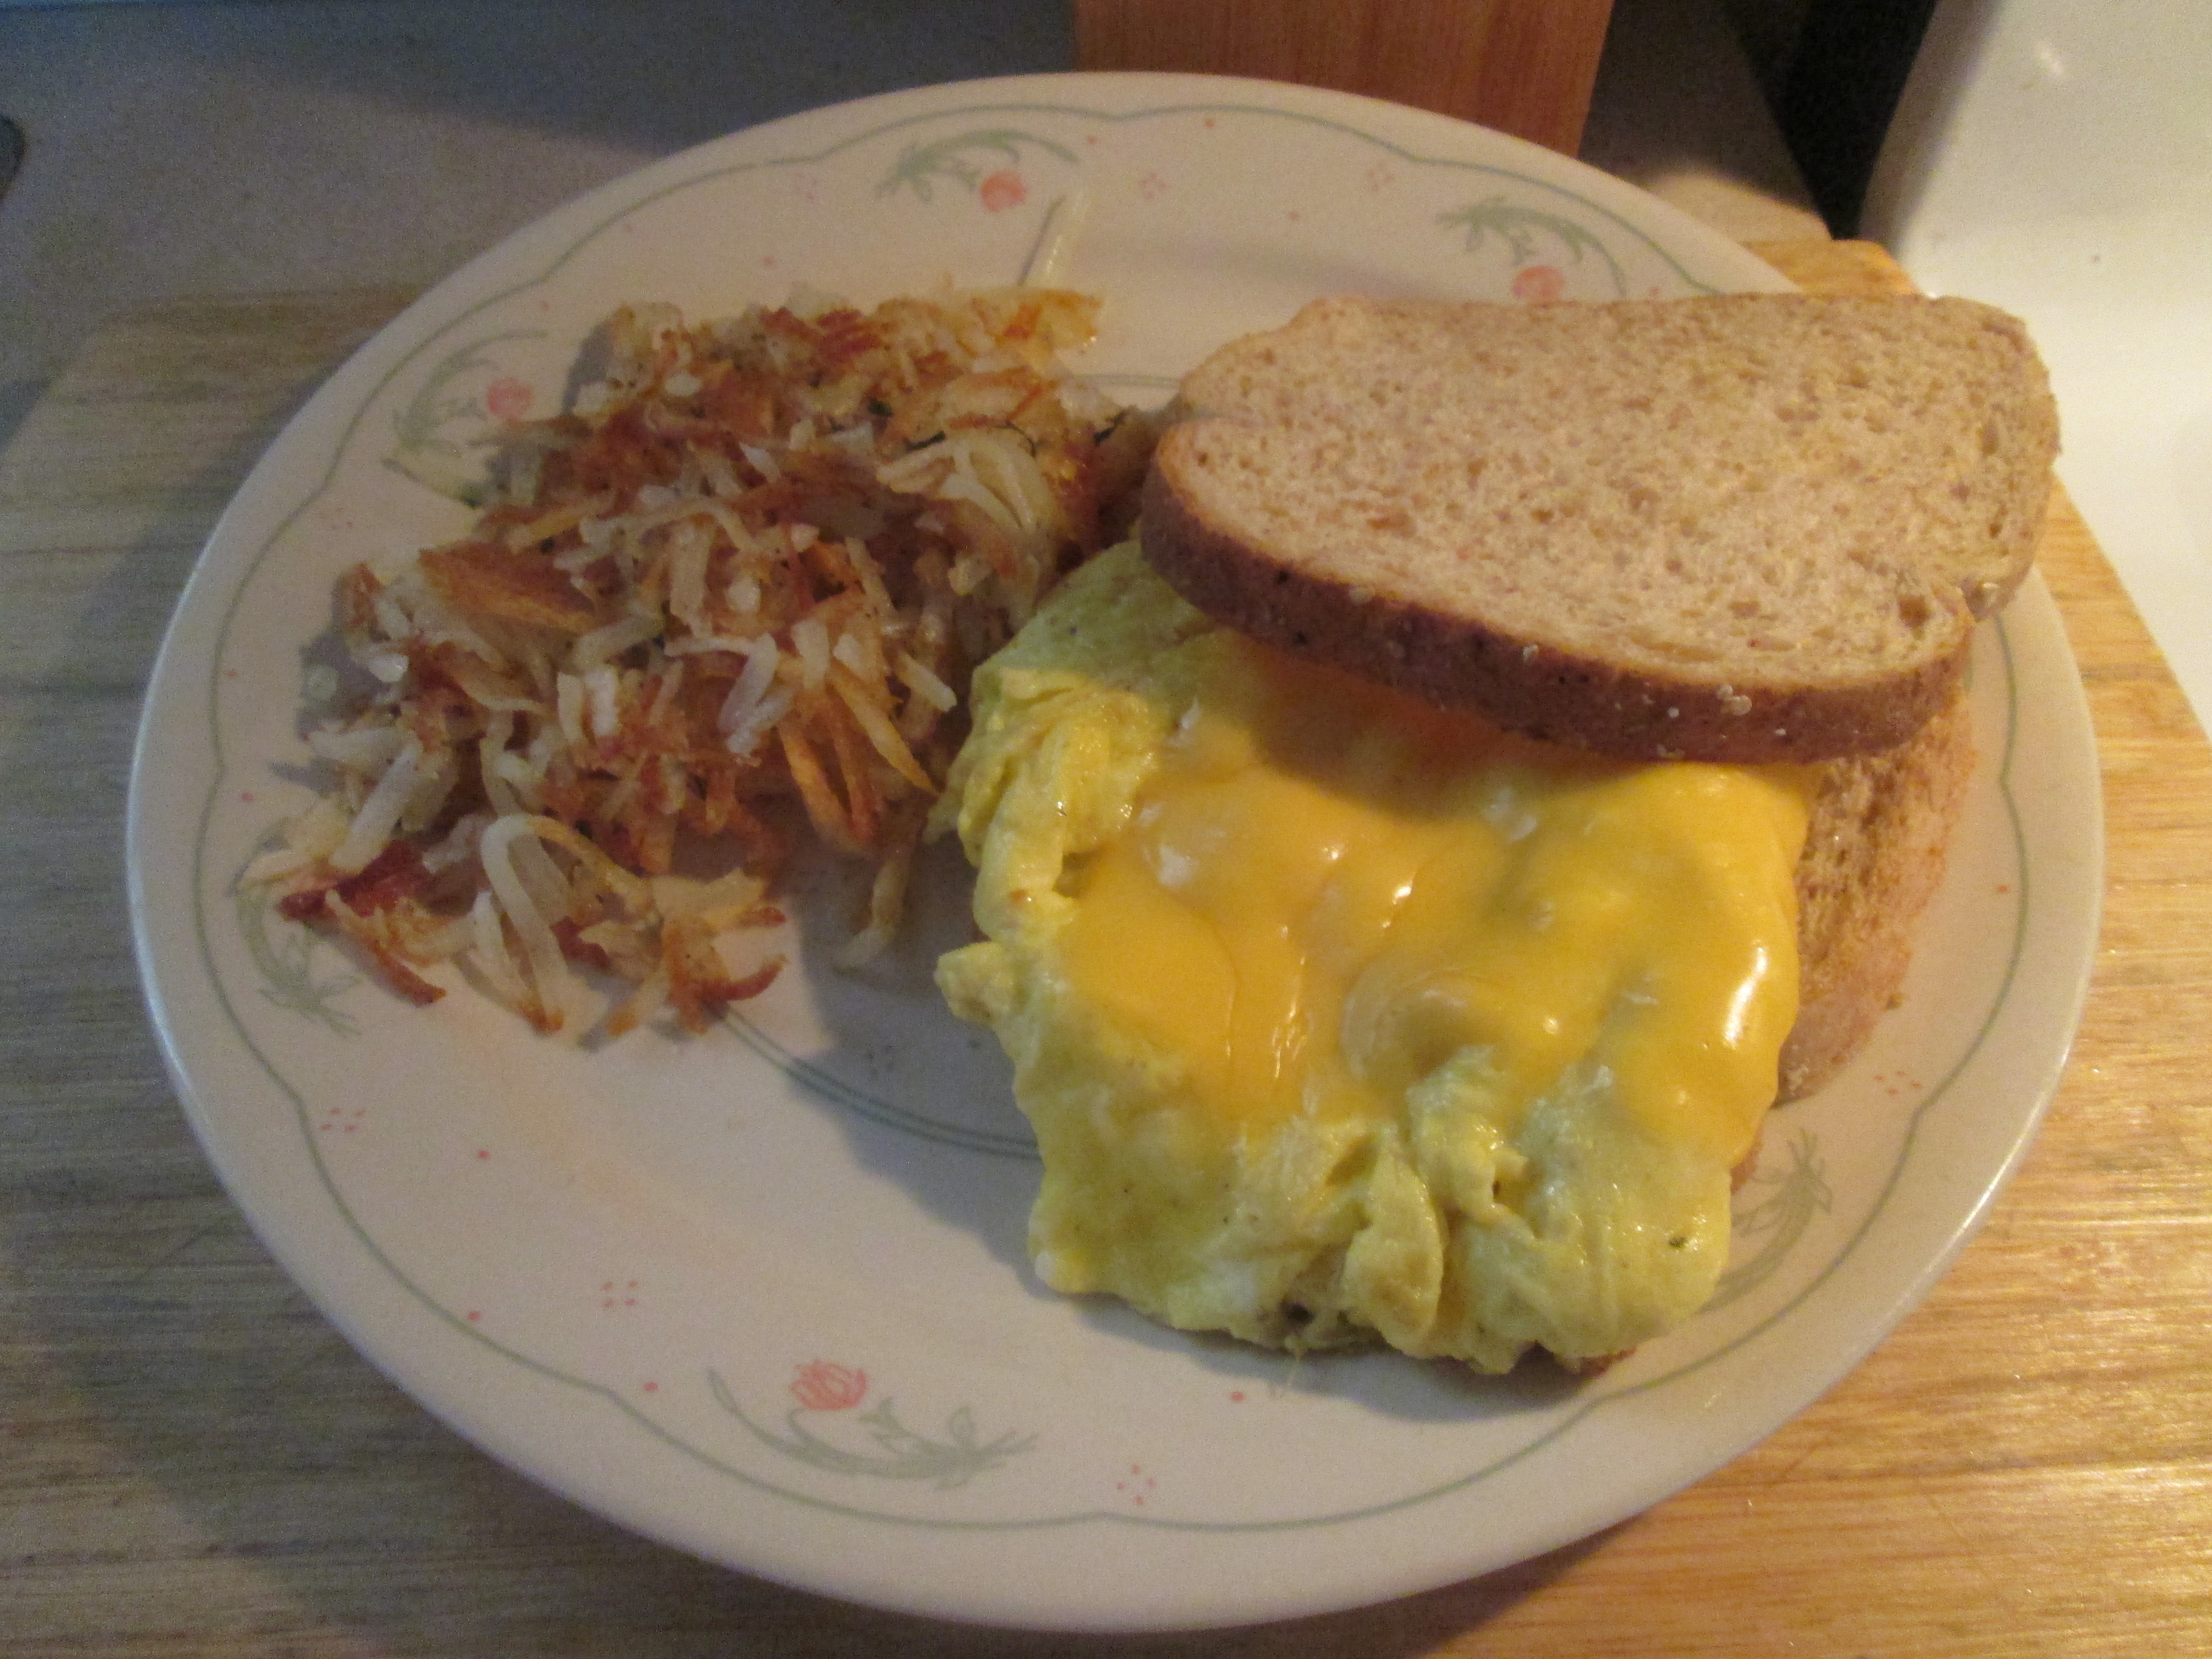 Egg Sandwich And Hash Browns 008 My Meals Are On Wheels